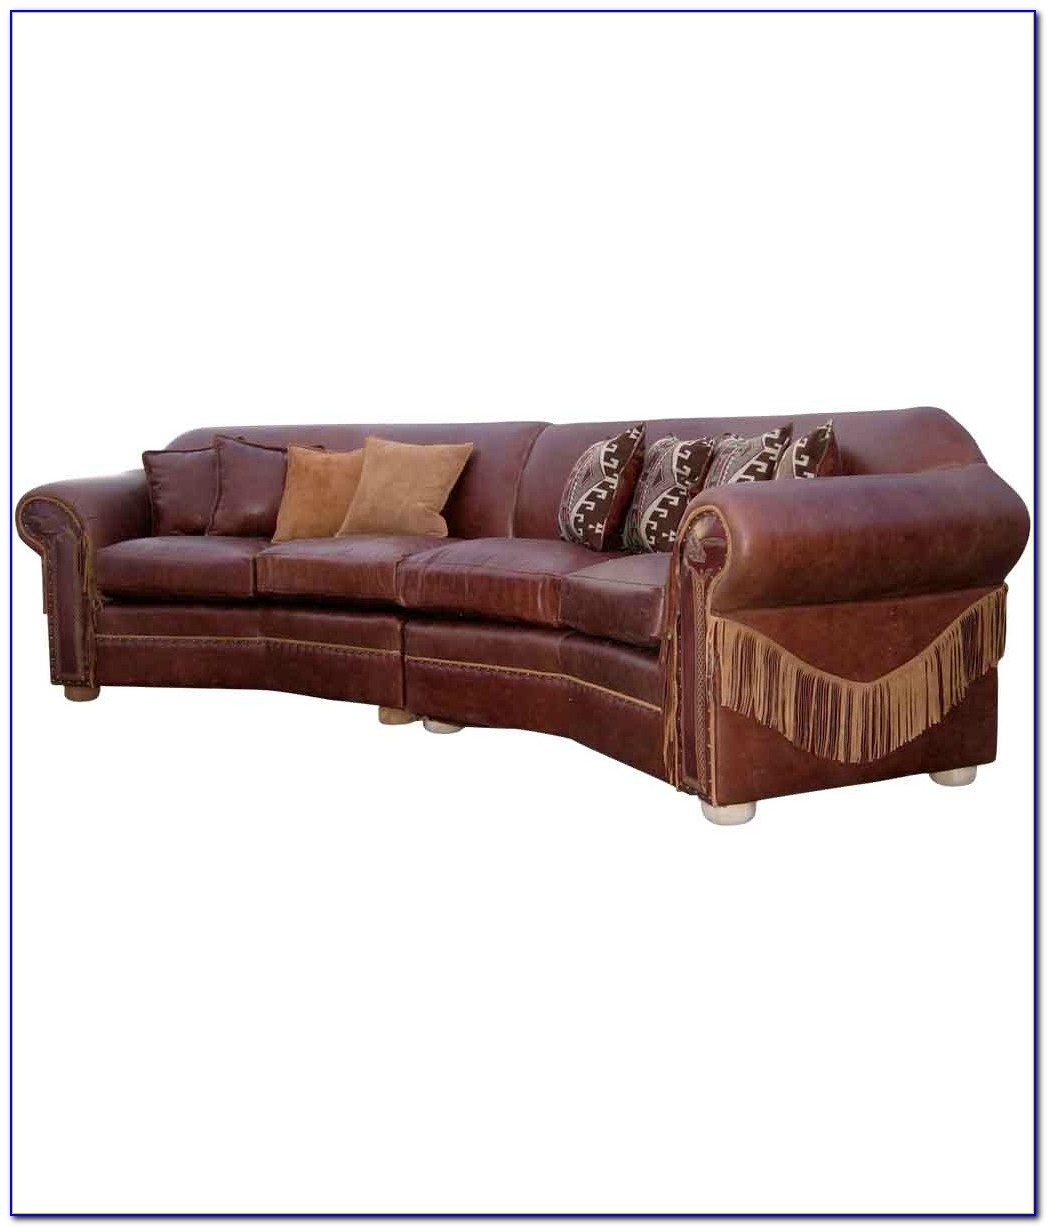 Curved Espresso Leather Sectional Sofa